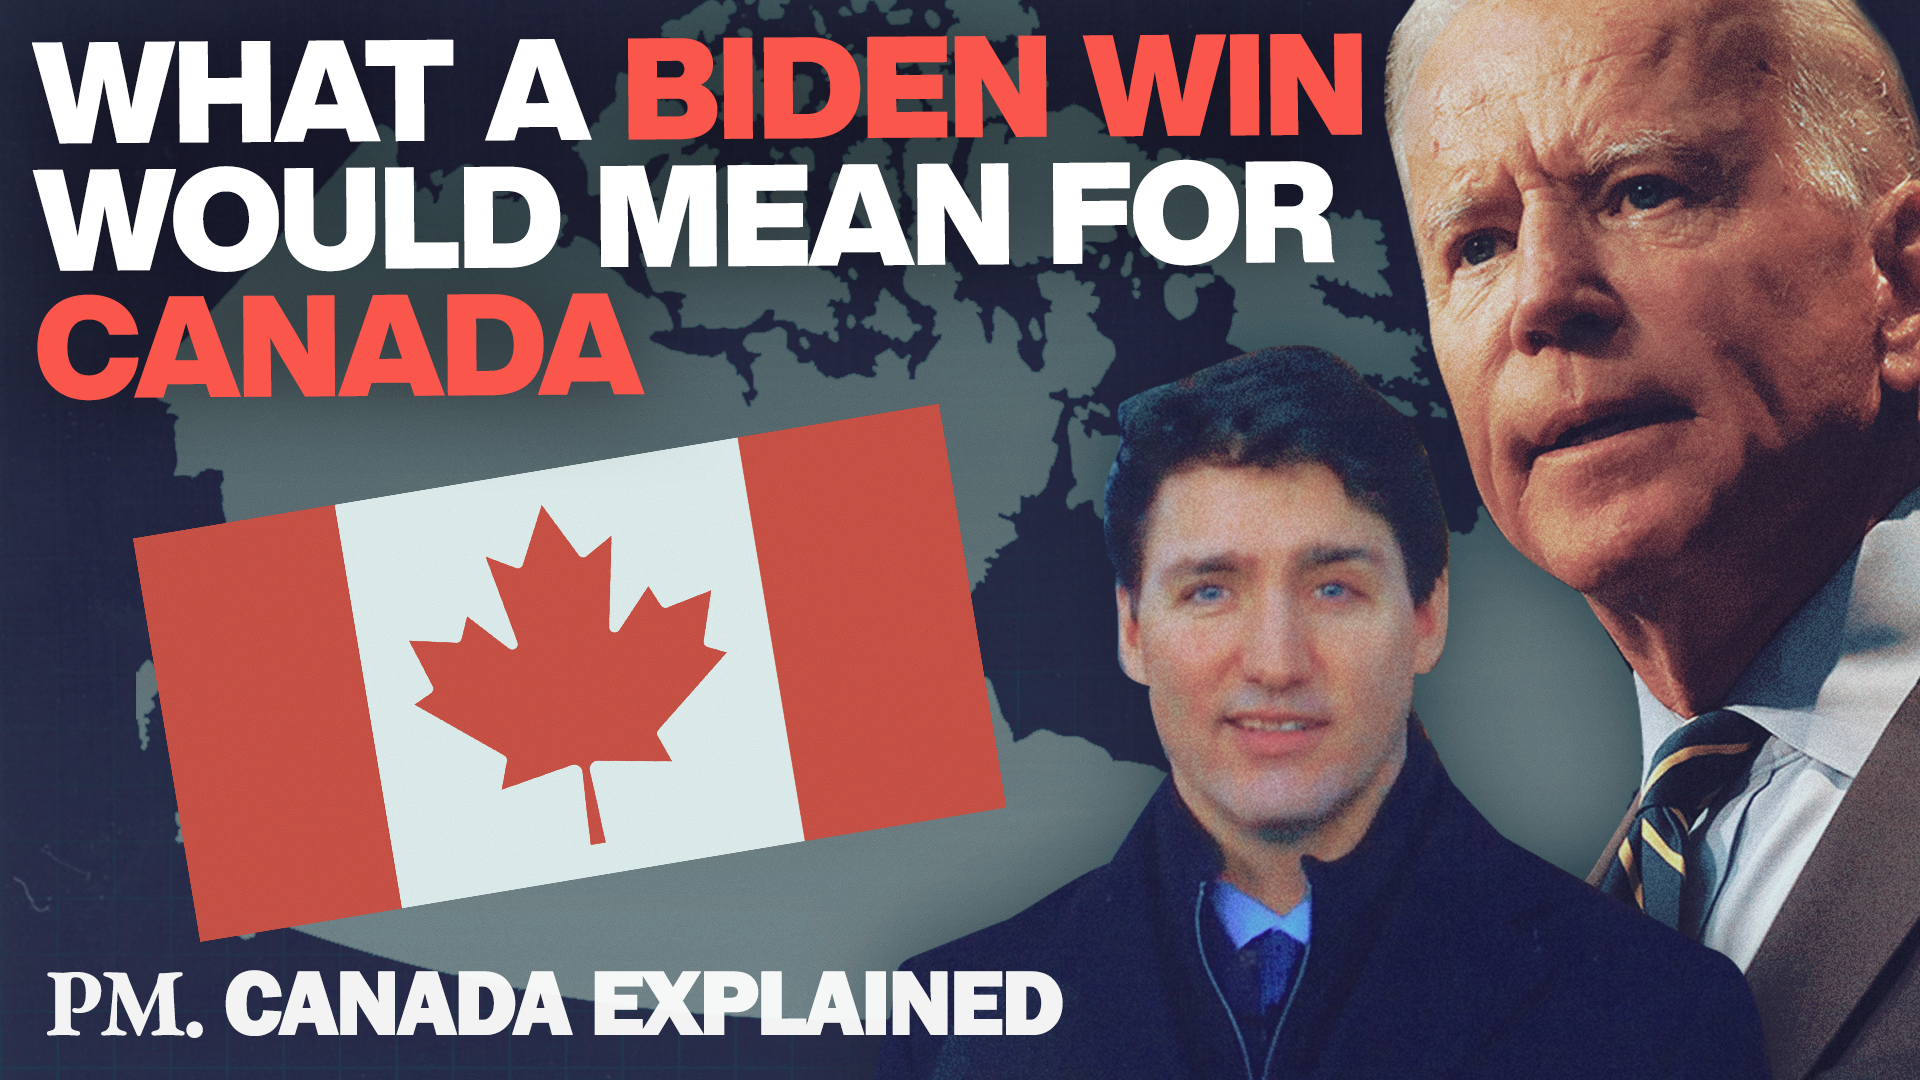 How would a Biden presidency affect Canada?